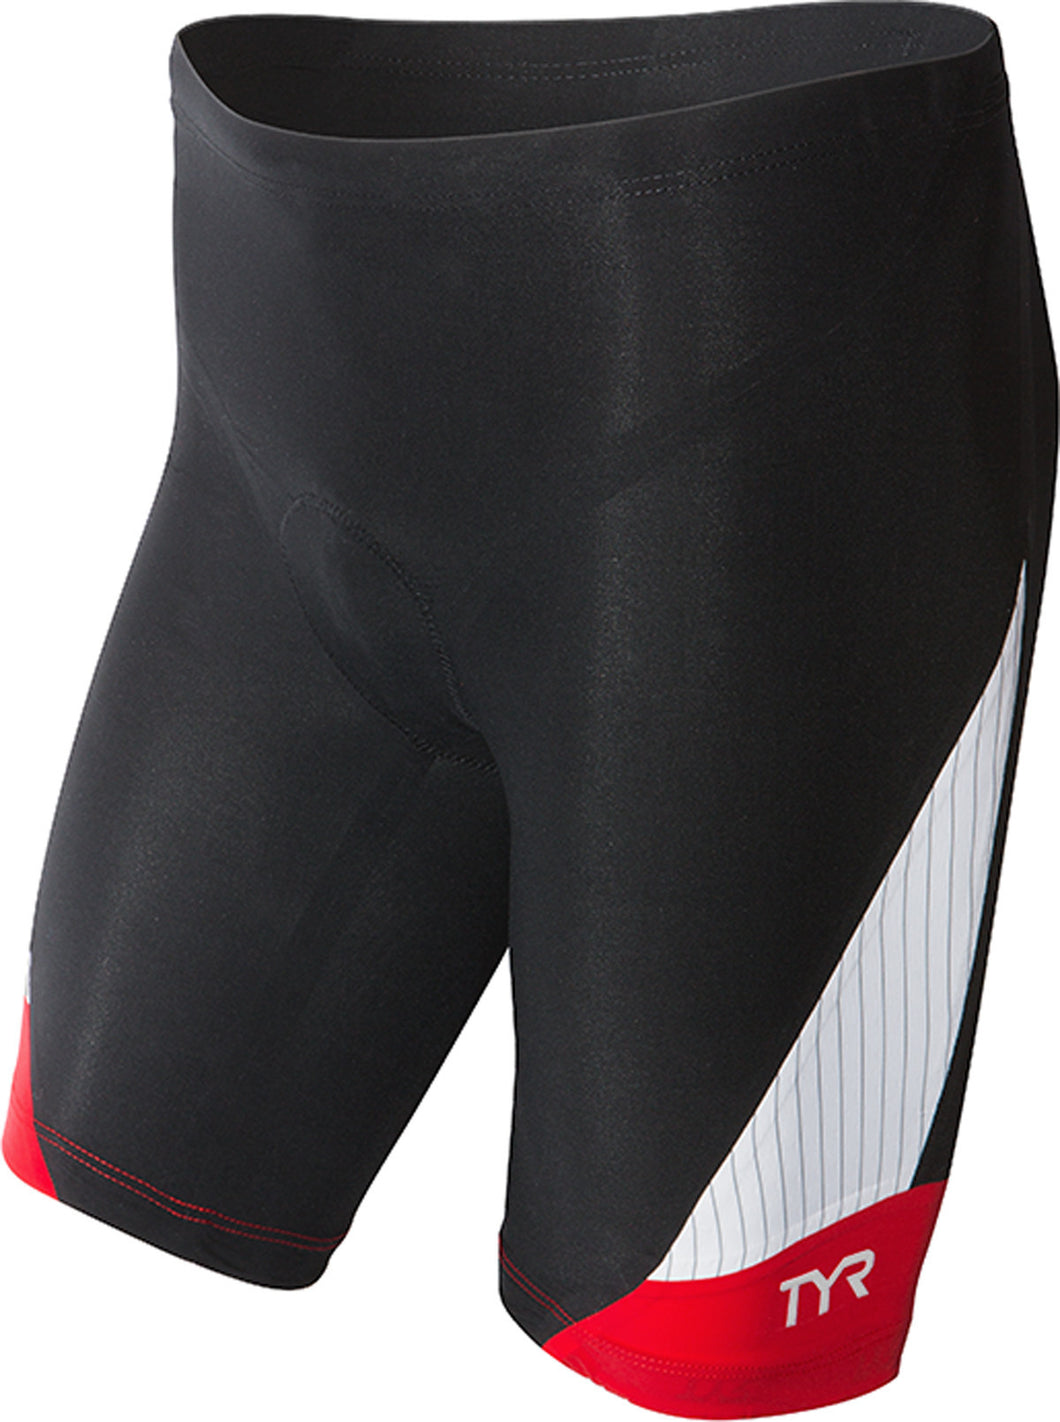 TYR Sport Men's Carbon 9